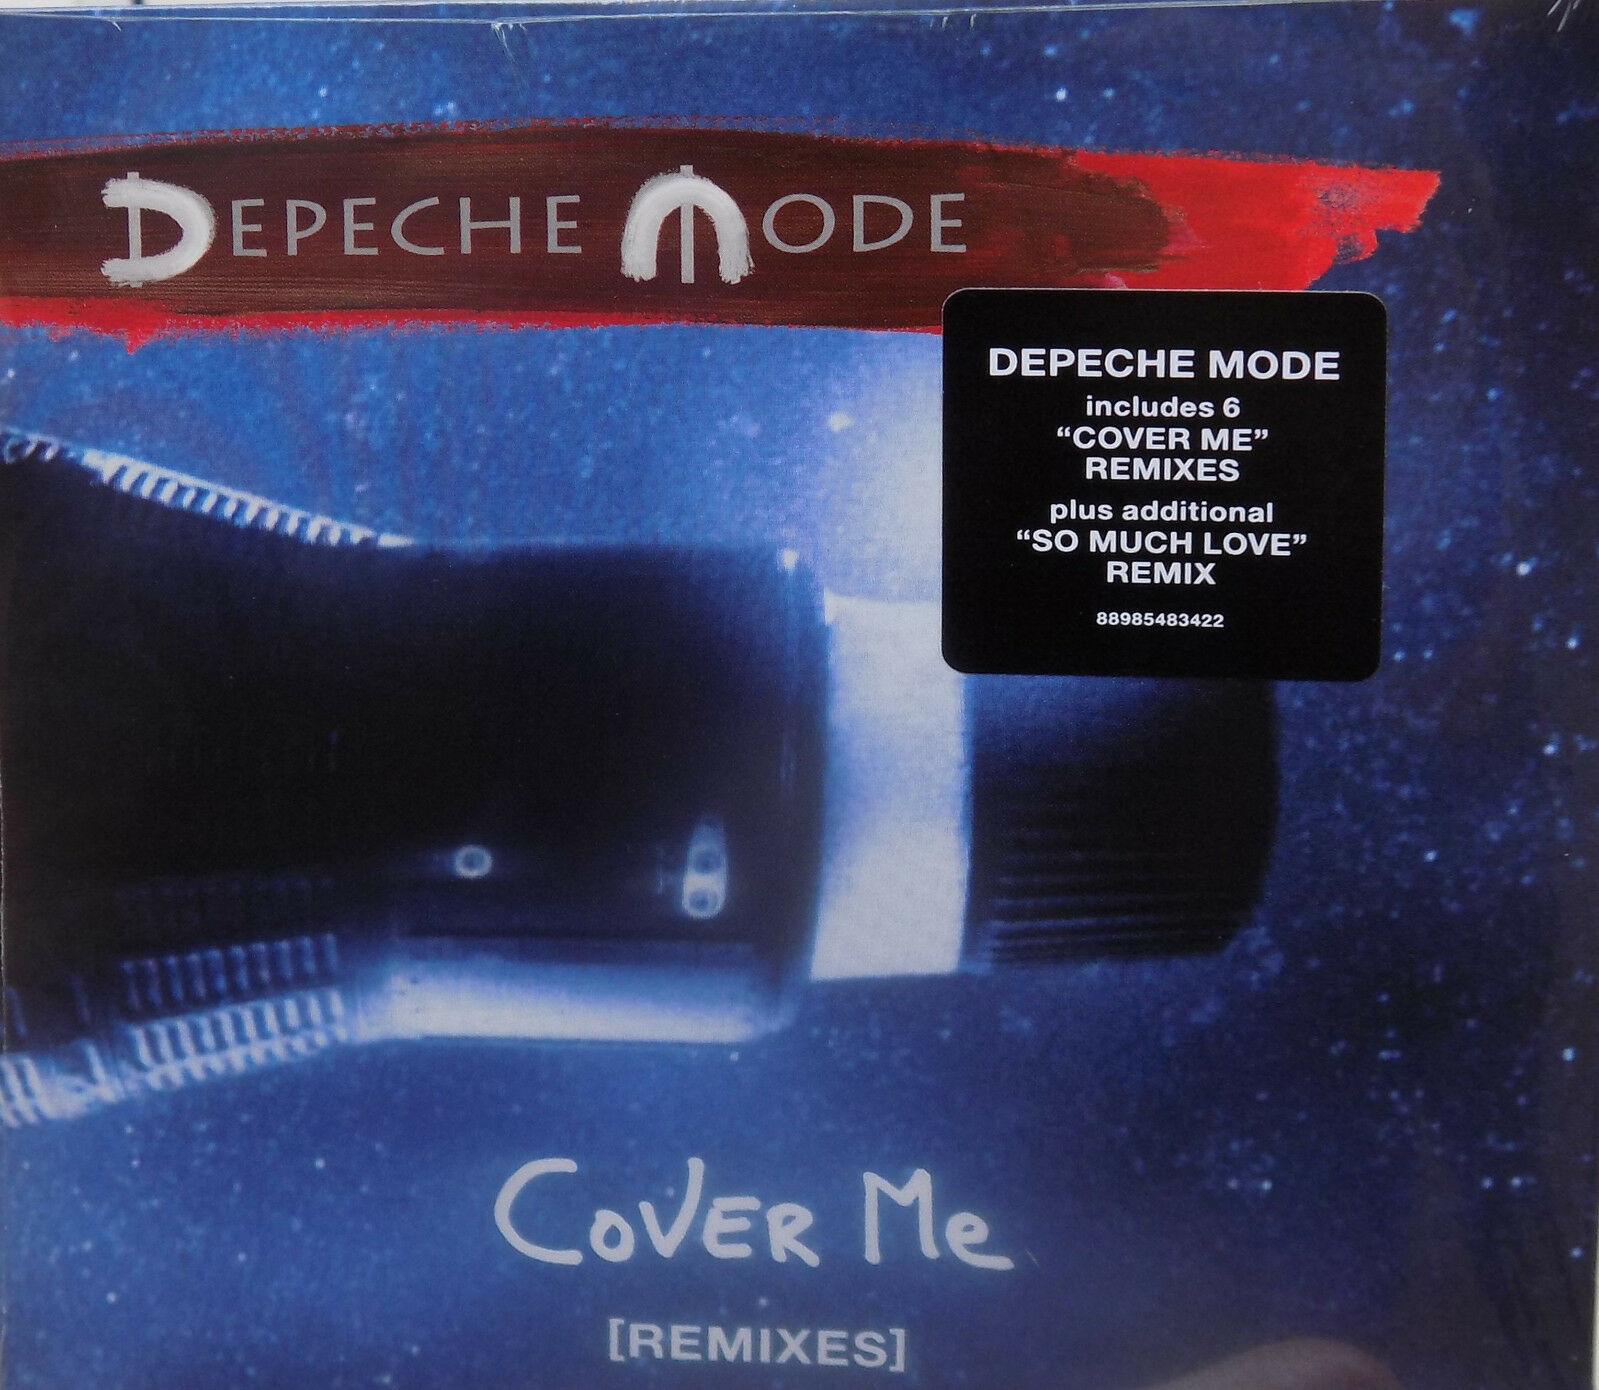 depeche mode cd cover me remixes new maxi 8 track sealed eur 7 70 picclick it. Black Bedroom Furniture Sets. Home Design Ideas